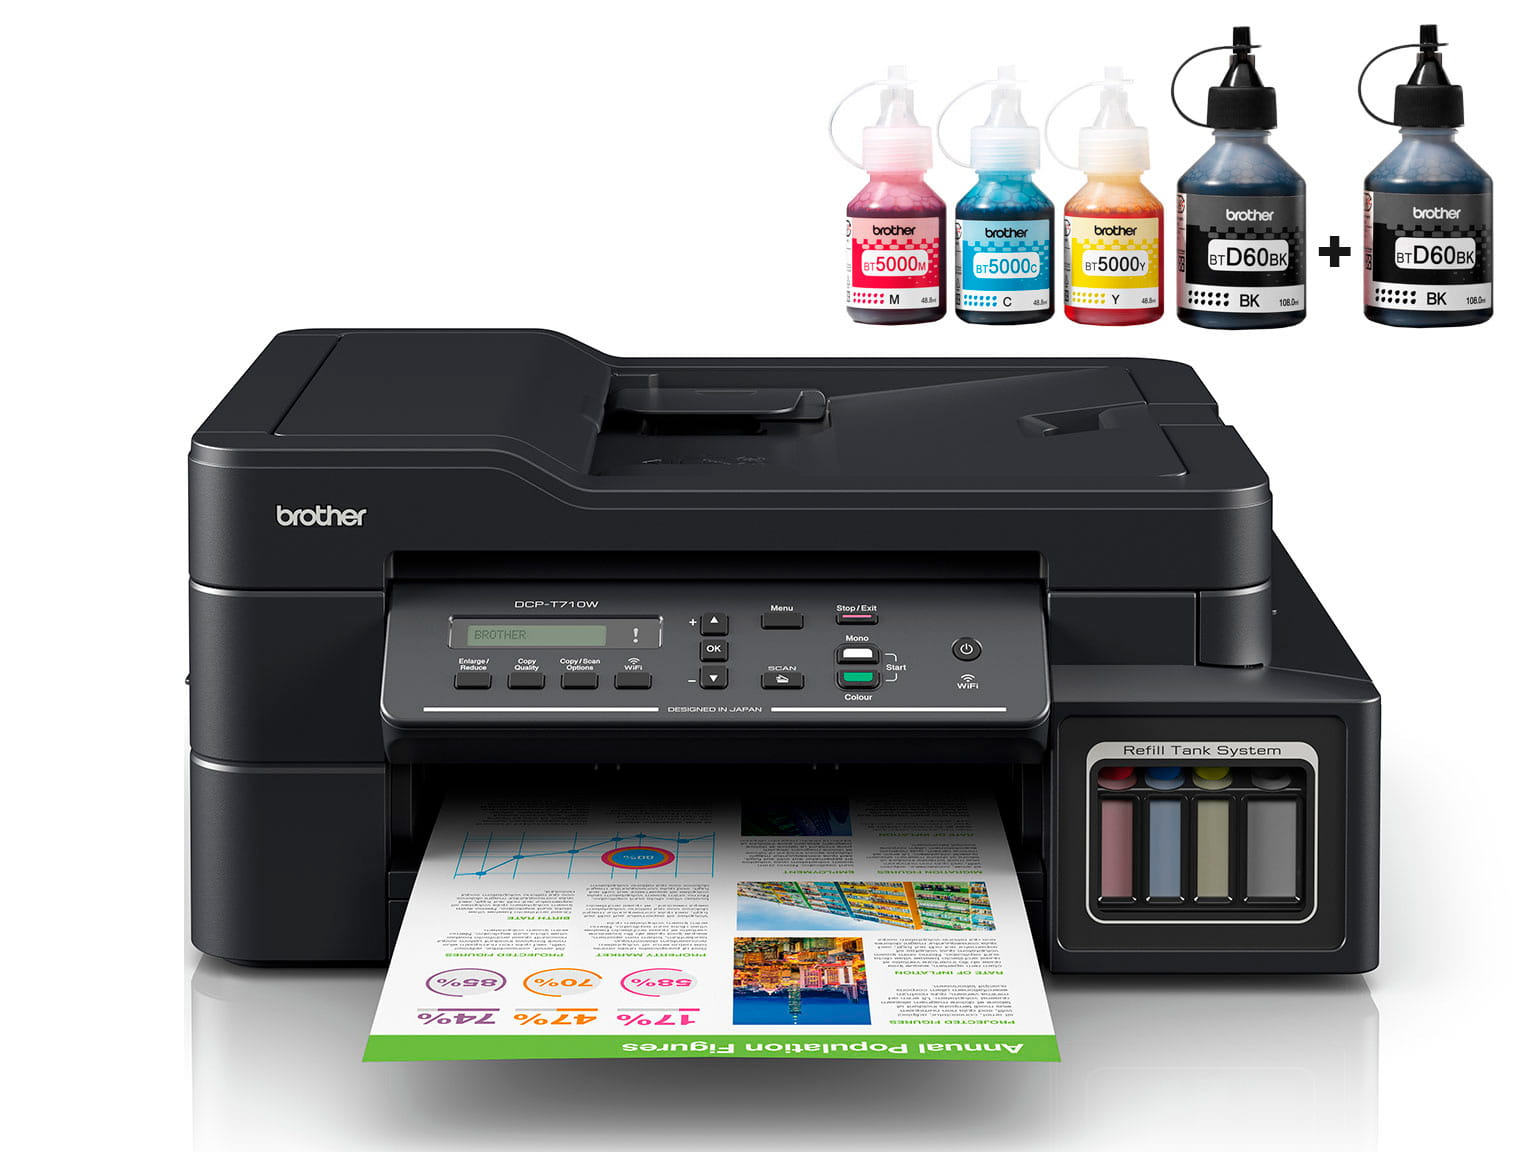 Brother InkBenefit Plus inkjet printer DCP-T710W